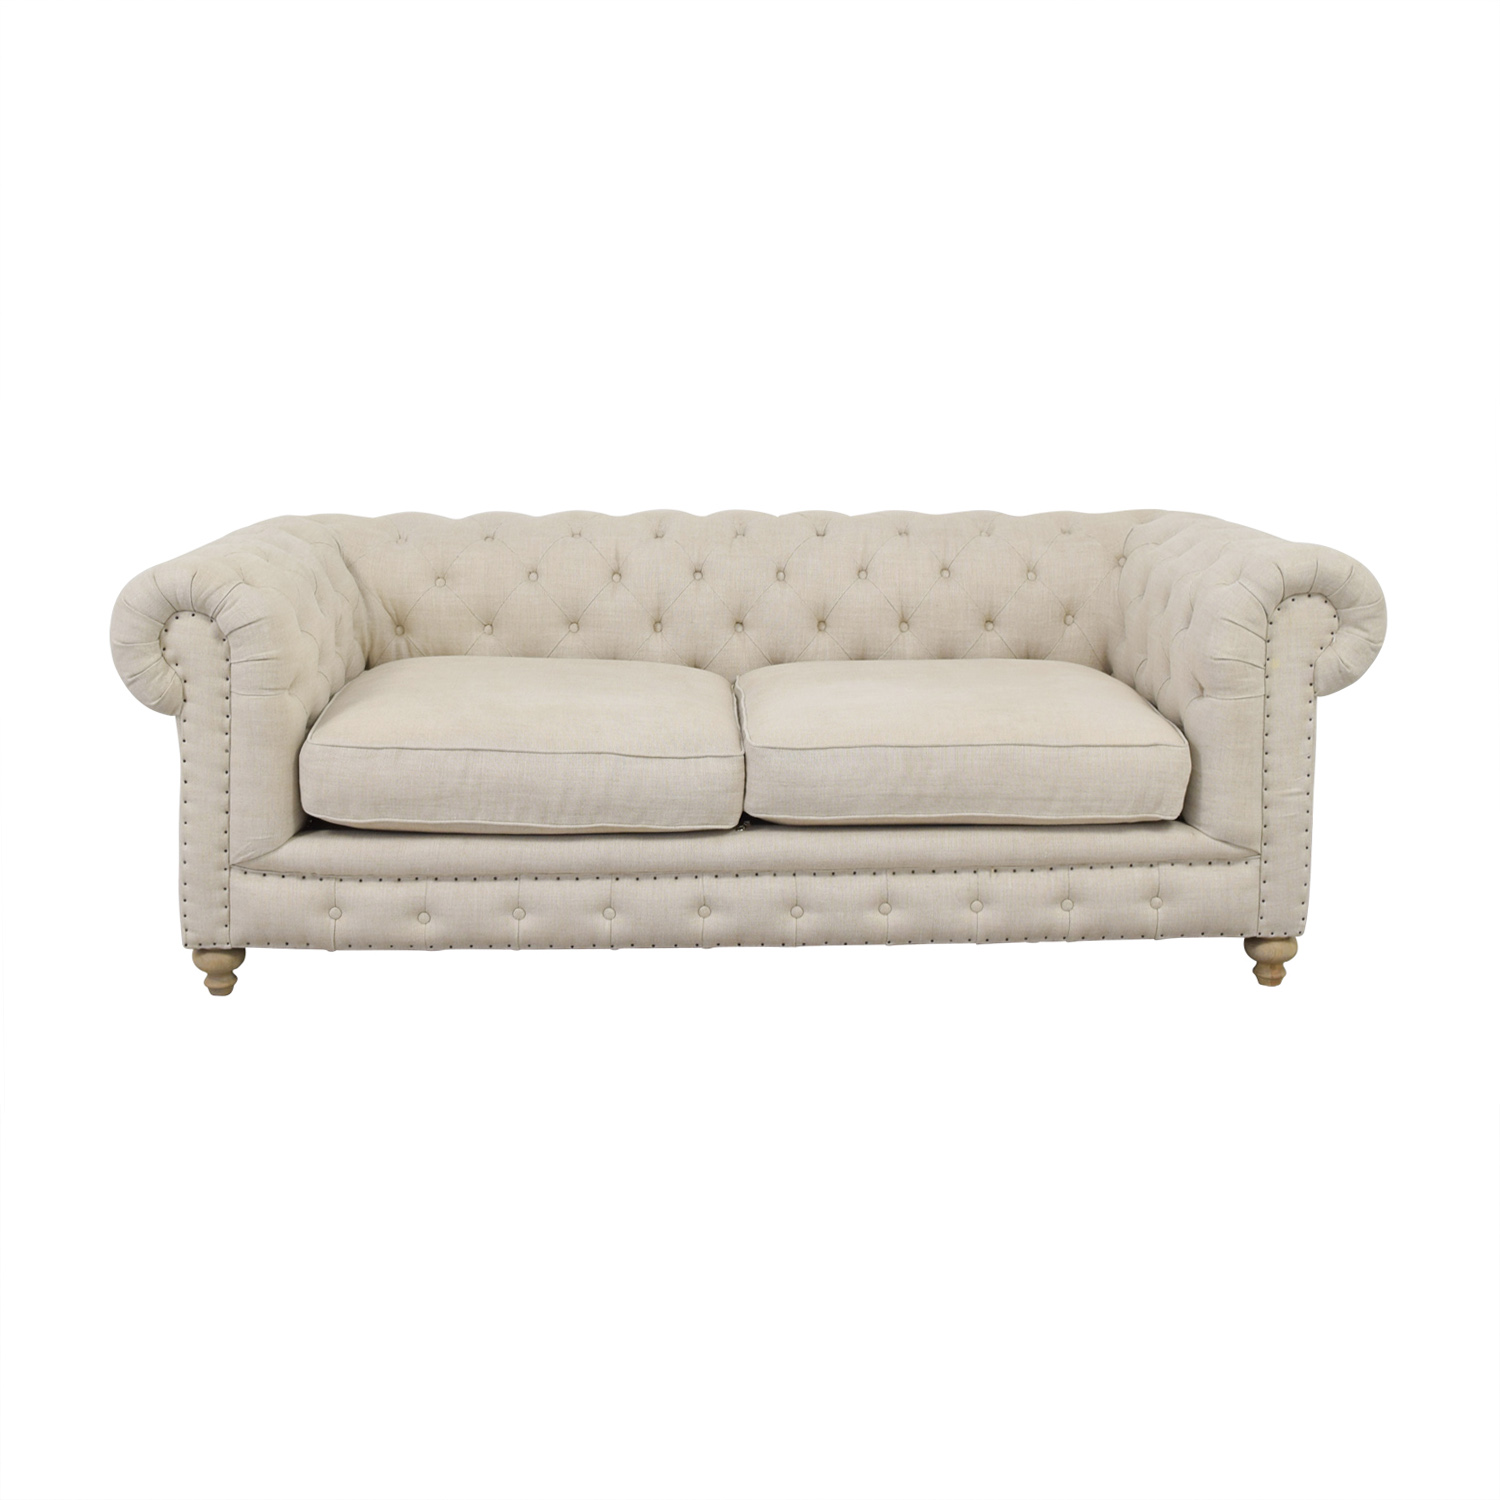 shop One Kings Lane Chesterfield Beige LinenTufted Sofa One Kings Lane